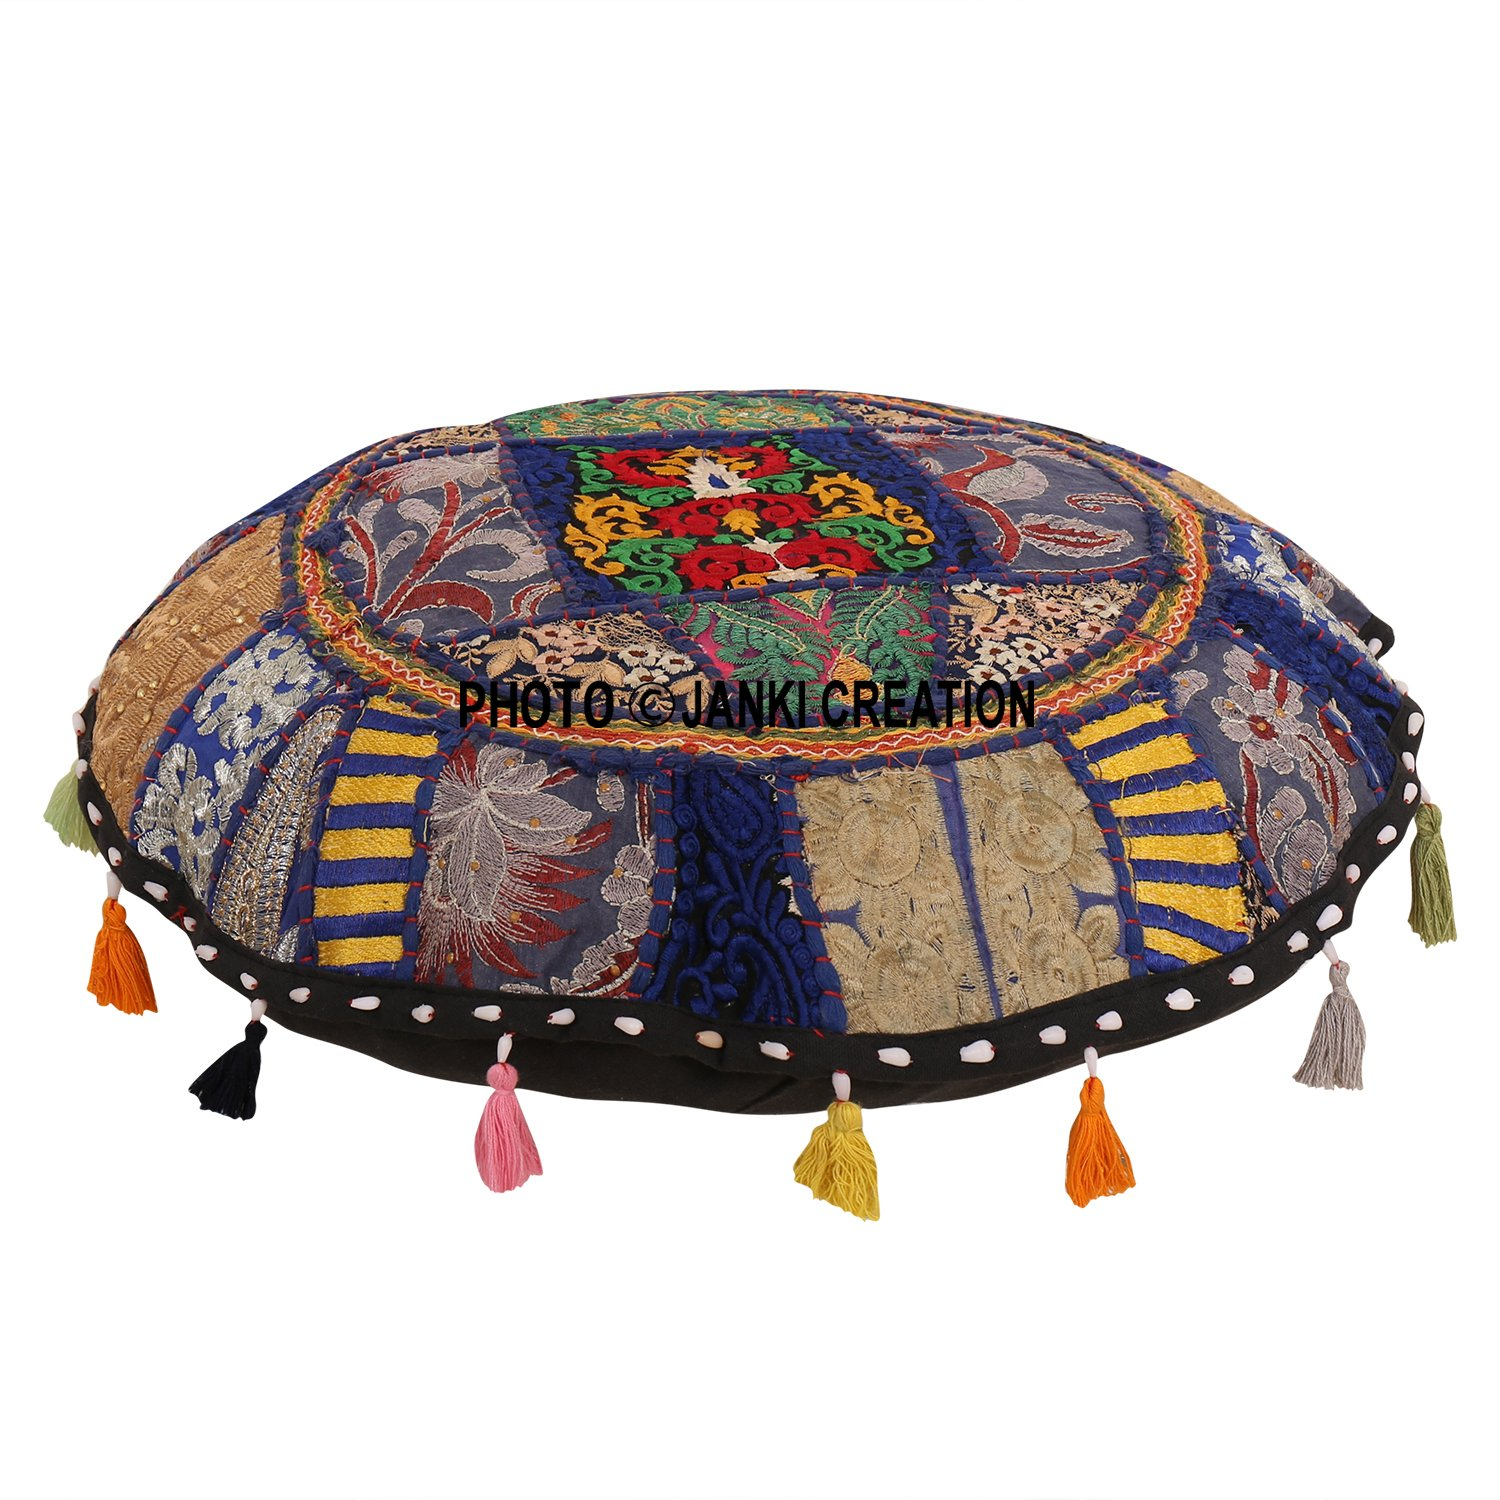 Beautiful Decorative Ruond Ottoman Indian Patchwork Pouffe ,Indian Traditional Home Decorative Handmade Cotton Ottoman Patchwork Foot Stool , Embroidered Chair Cover Vintage Pouf 16 Indian Cushion Set